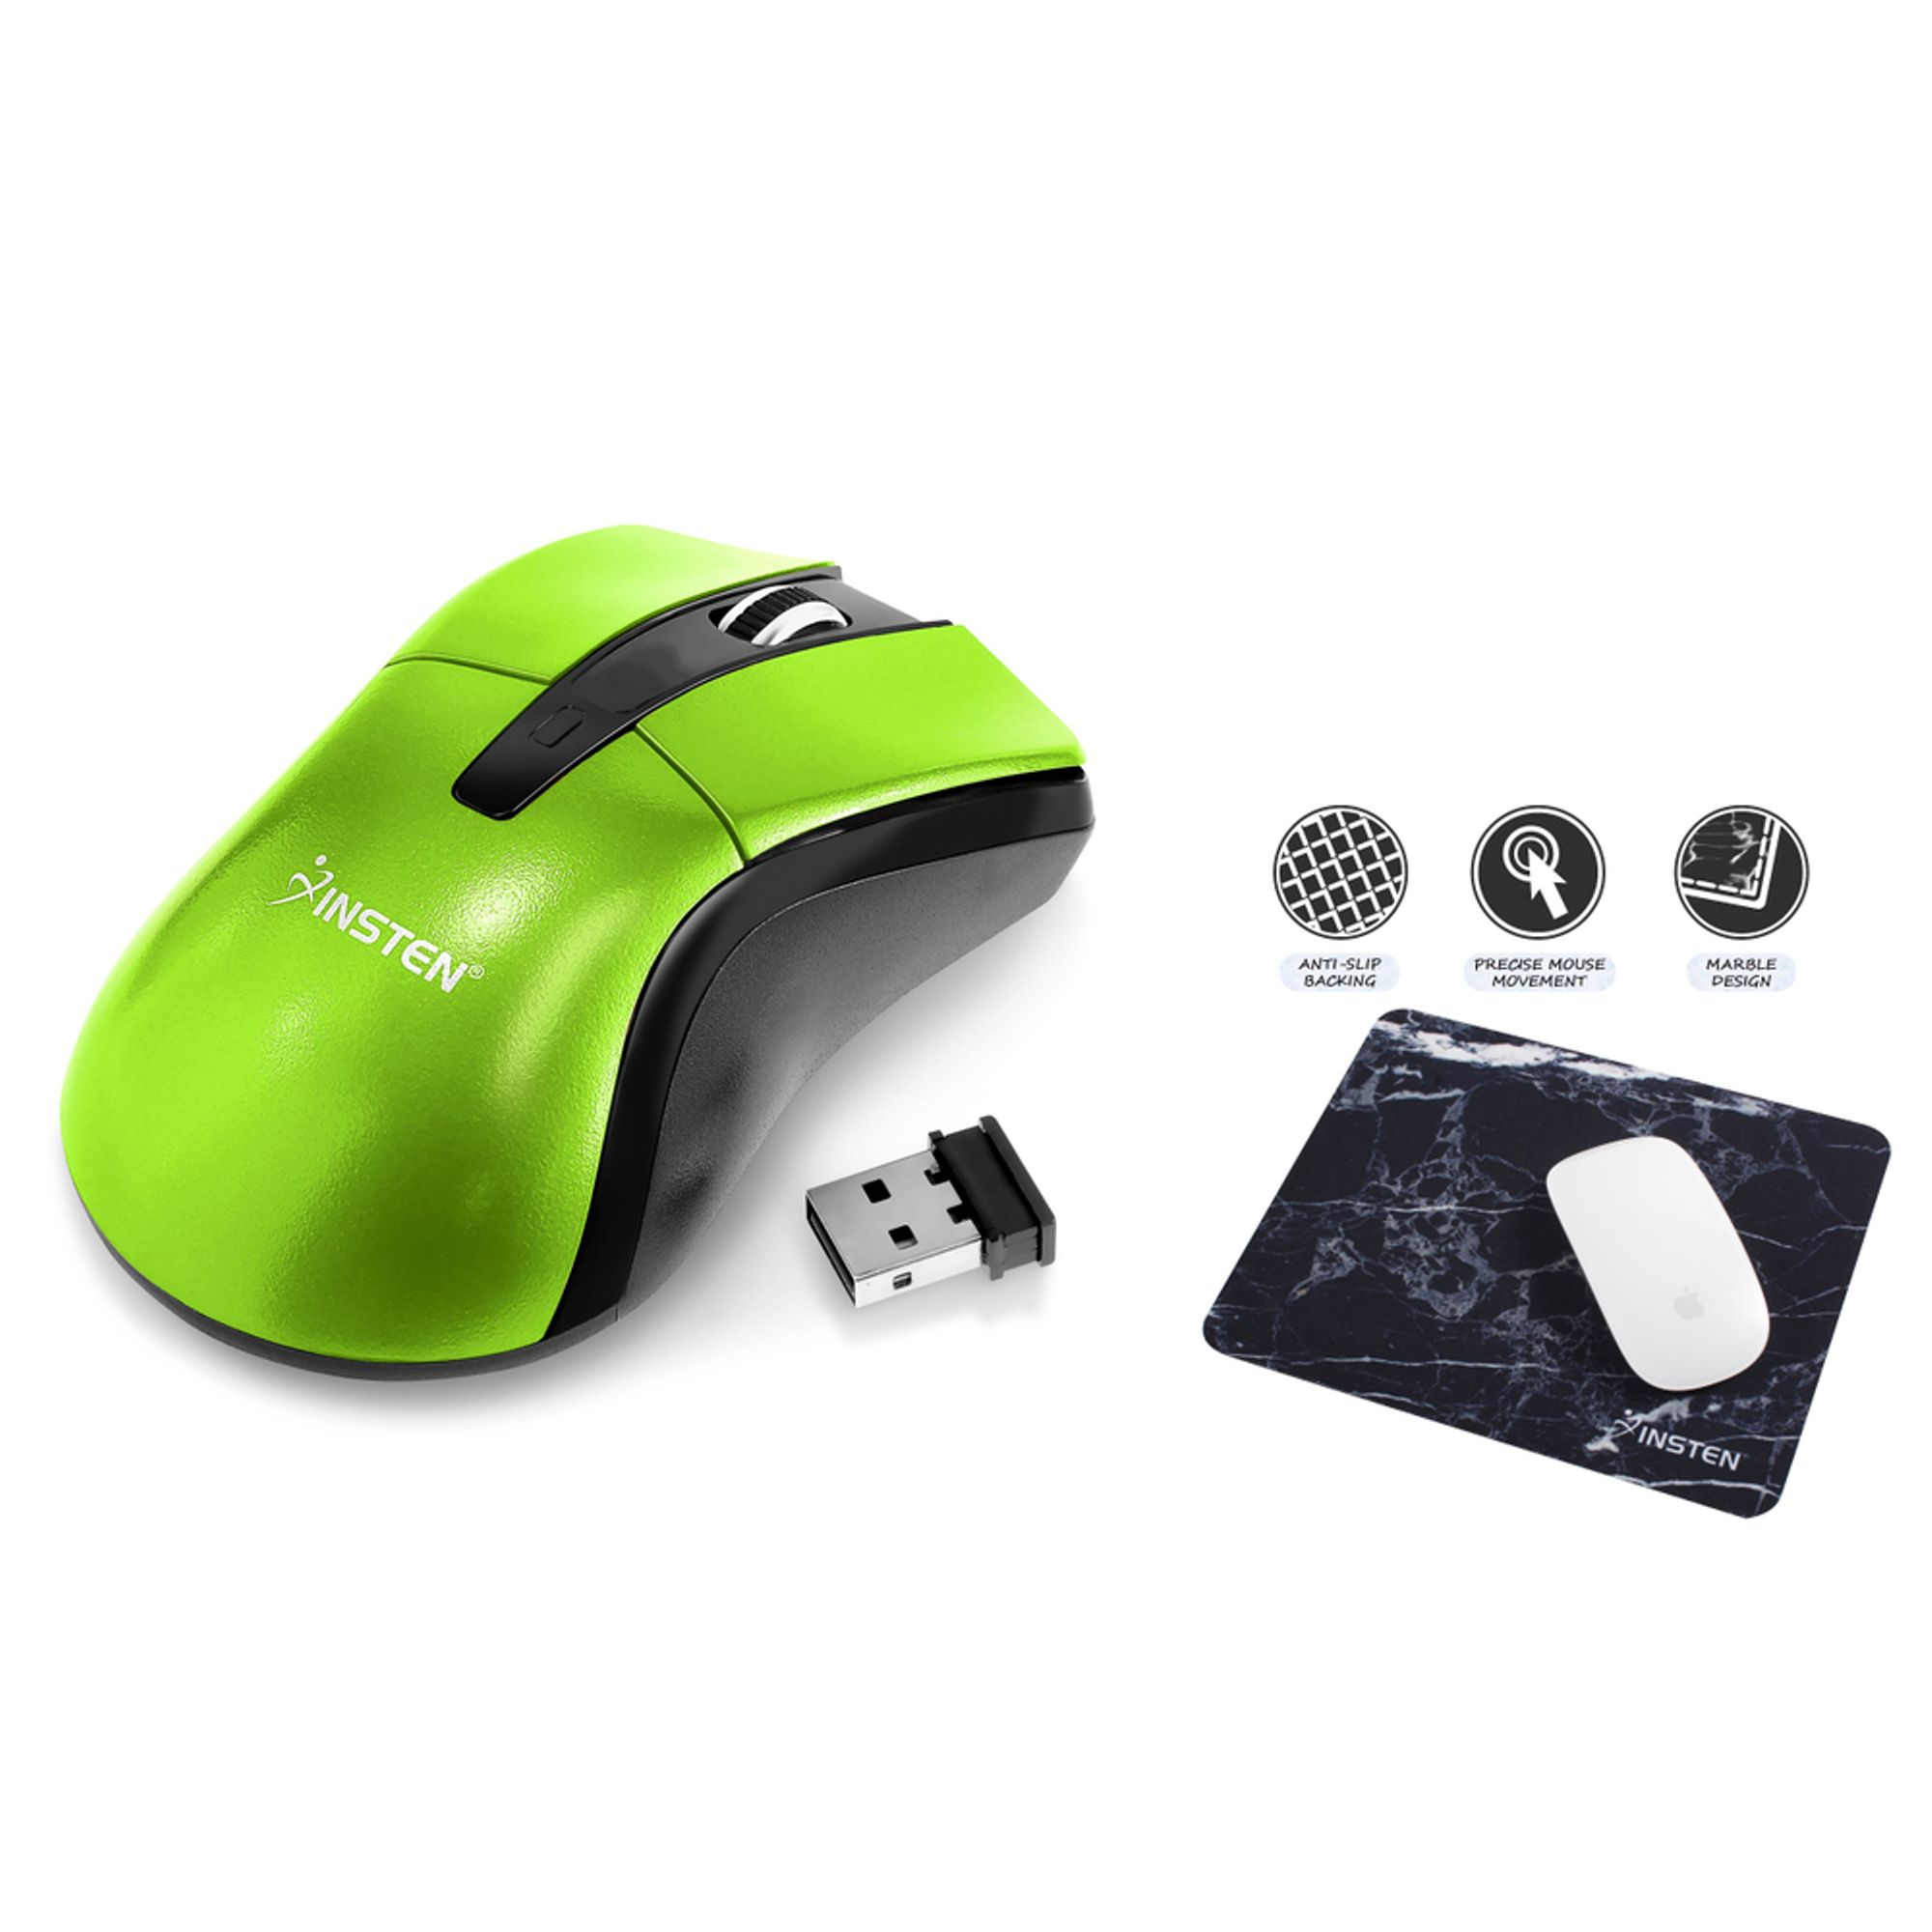 Insten Green Ver 2 2.4G Cordless Wireless Optical Mouse + Black Marble Mouse Pad